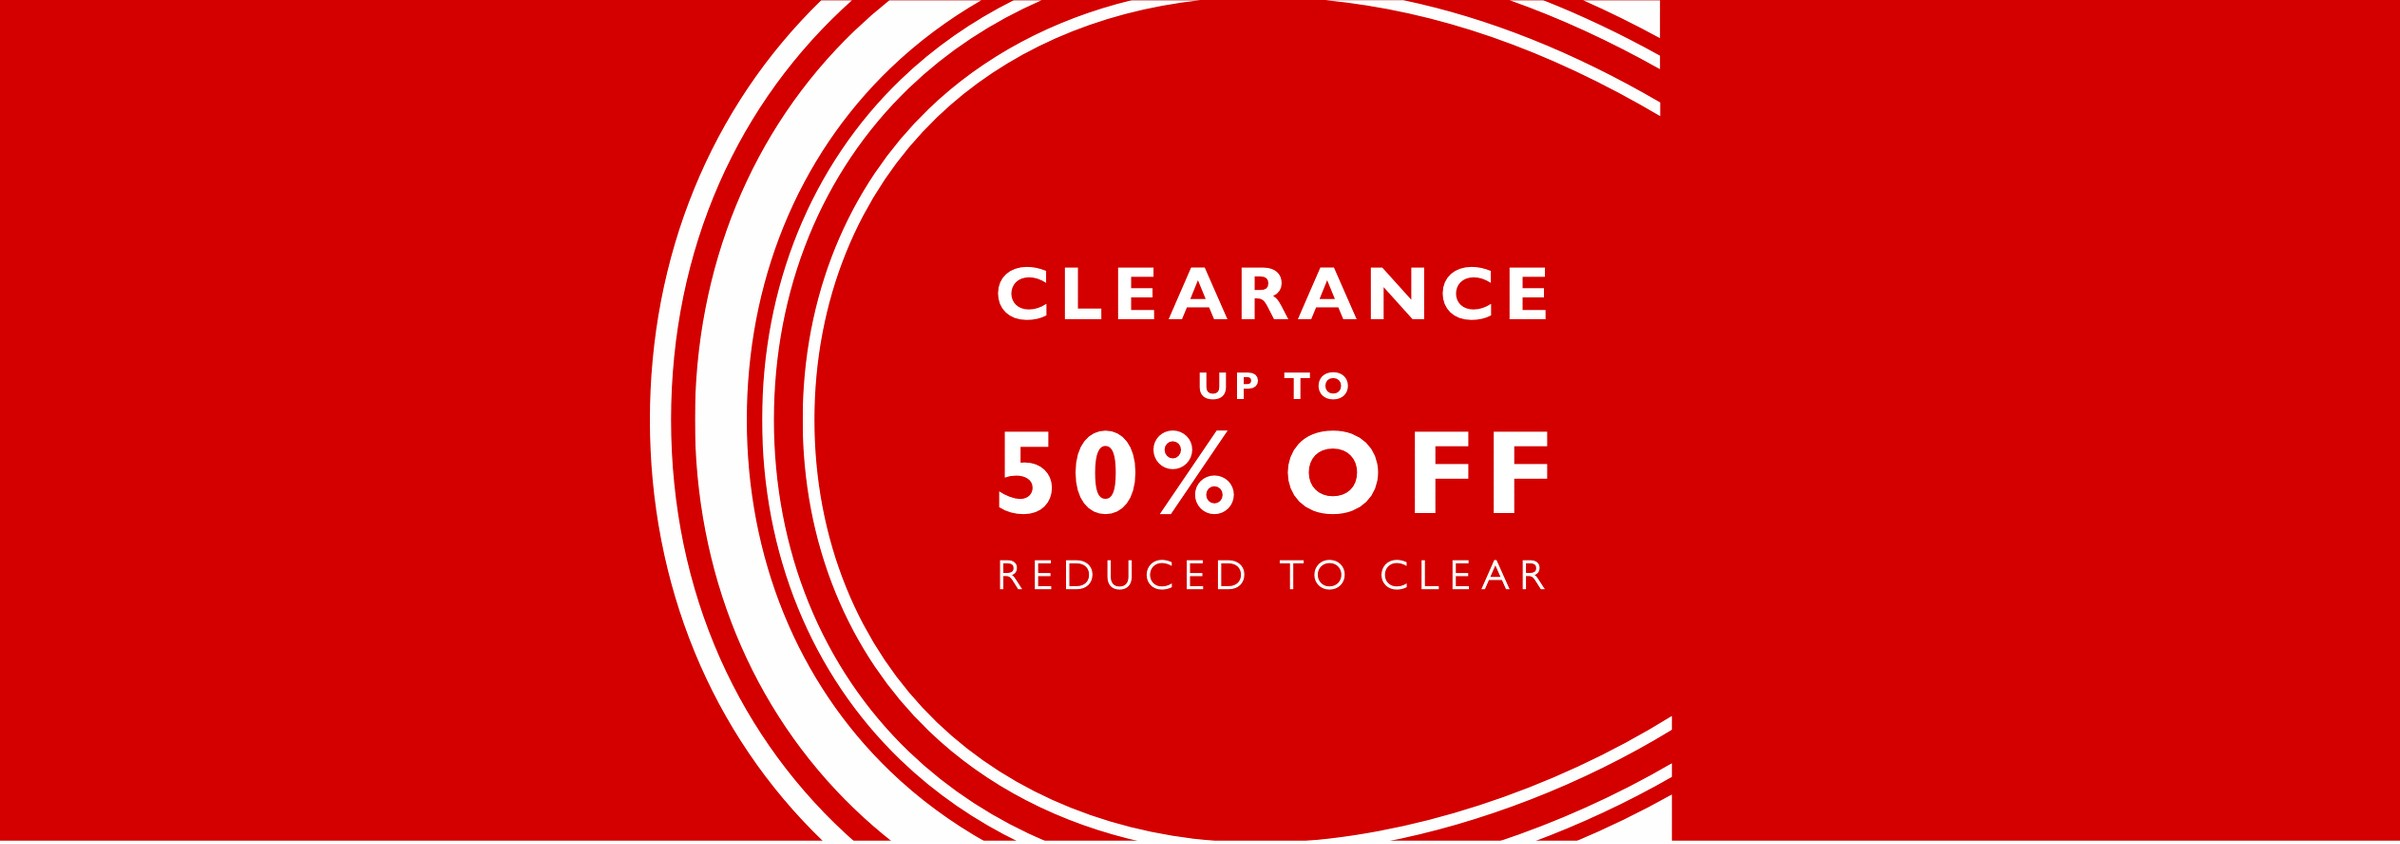 6d83c265534922 Clearance & Offers | Find Clearance Bargains | John Lewis & Partners